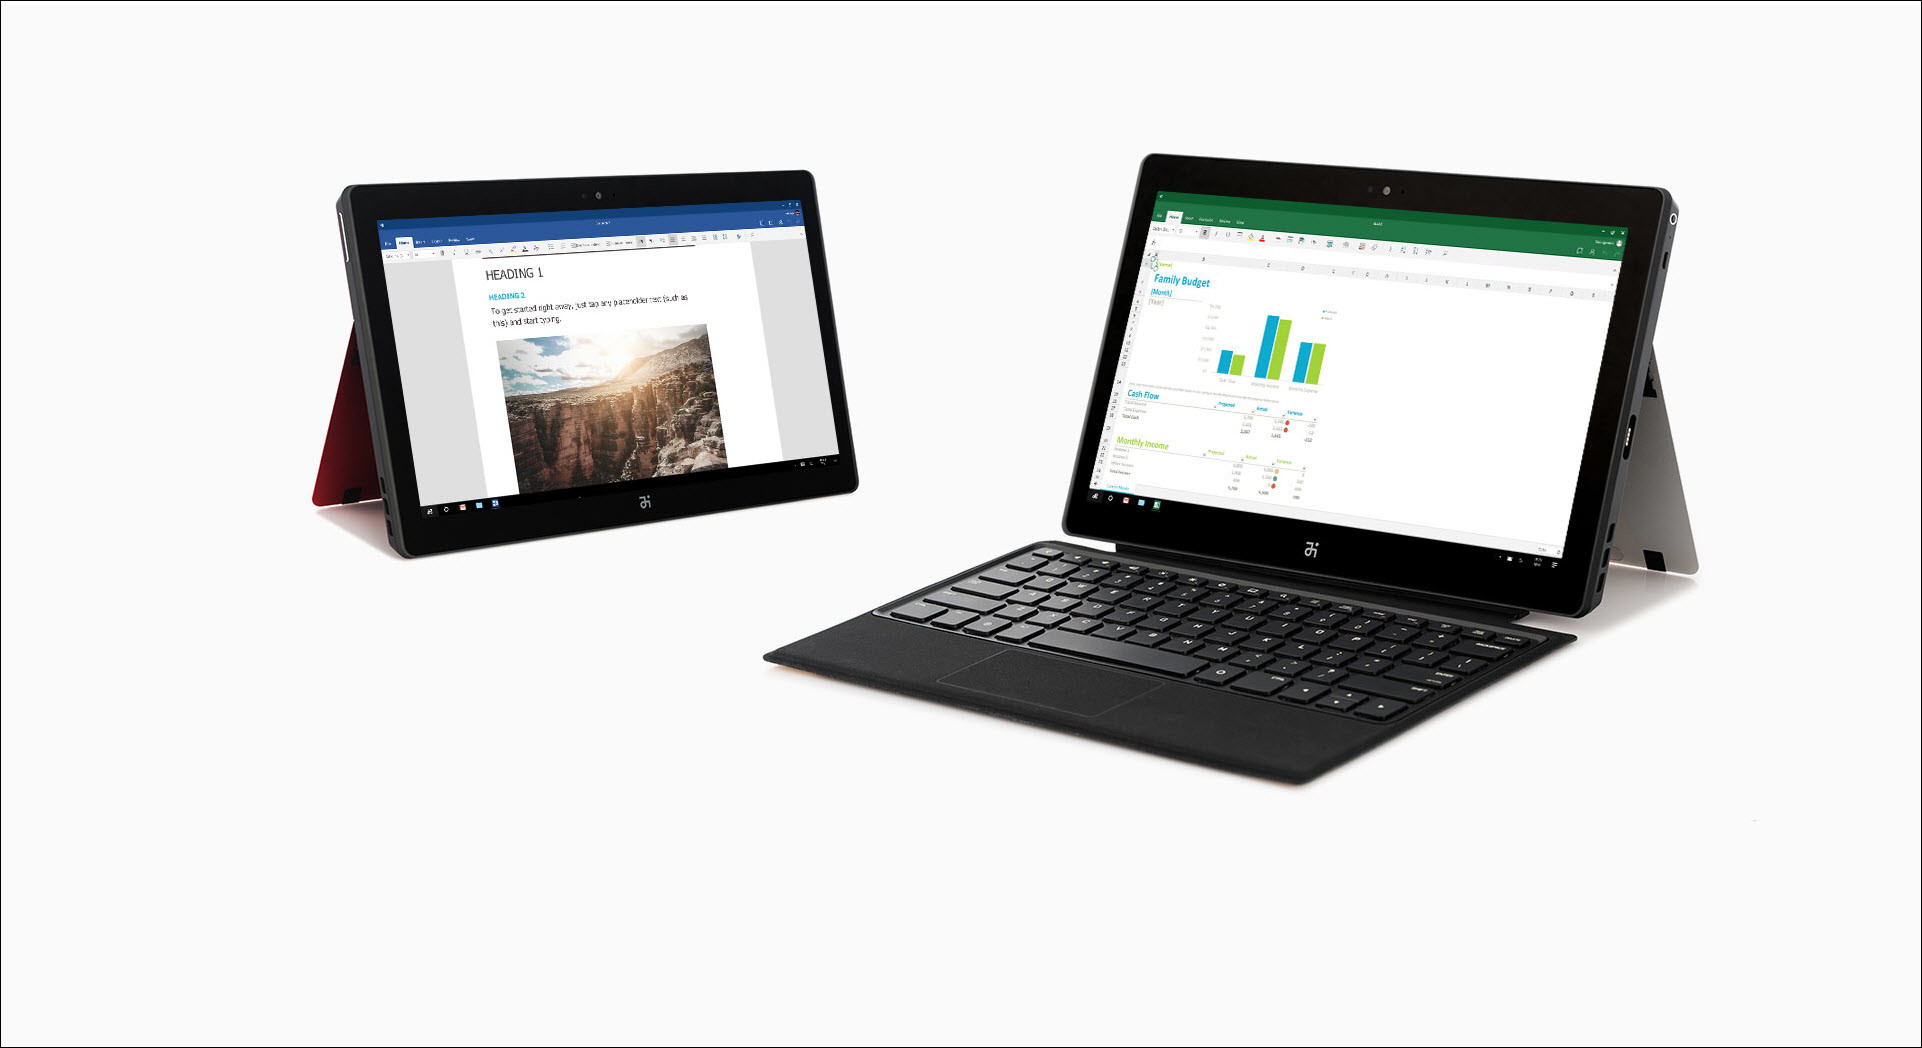 How to install Android Remix on PC?